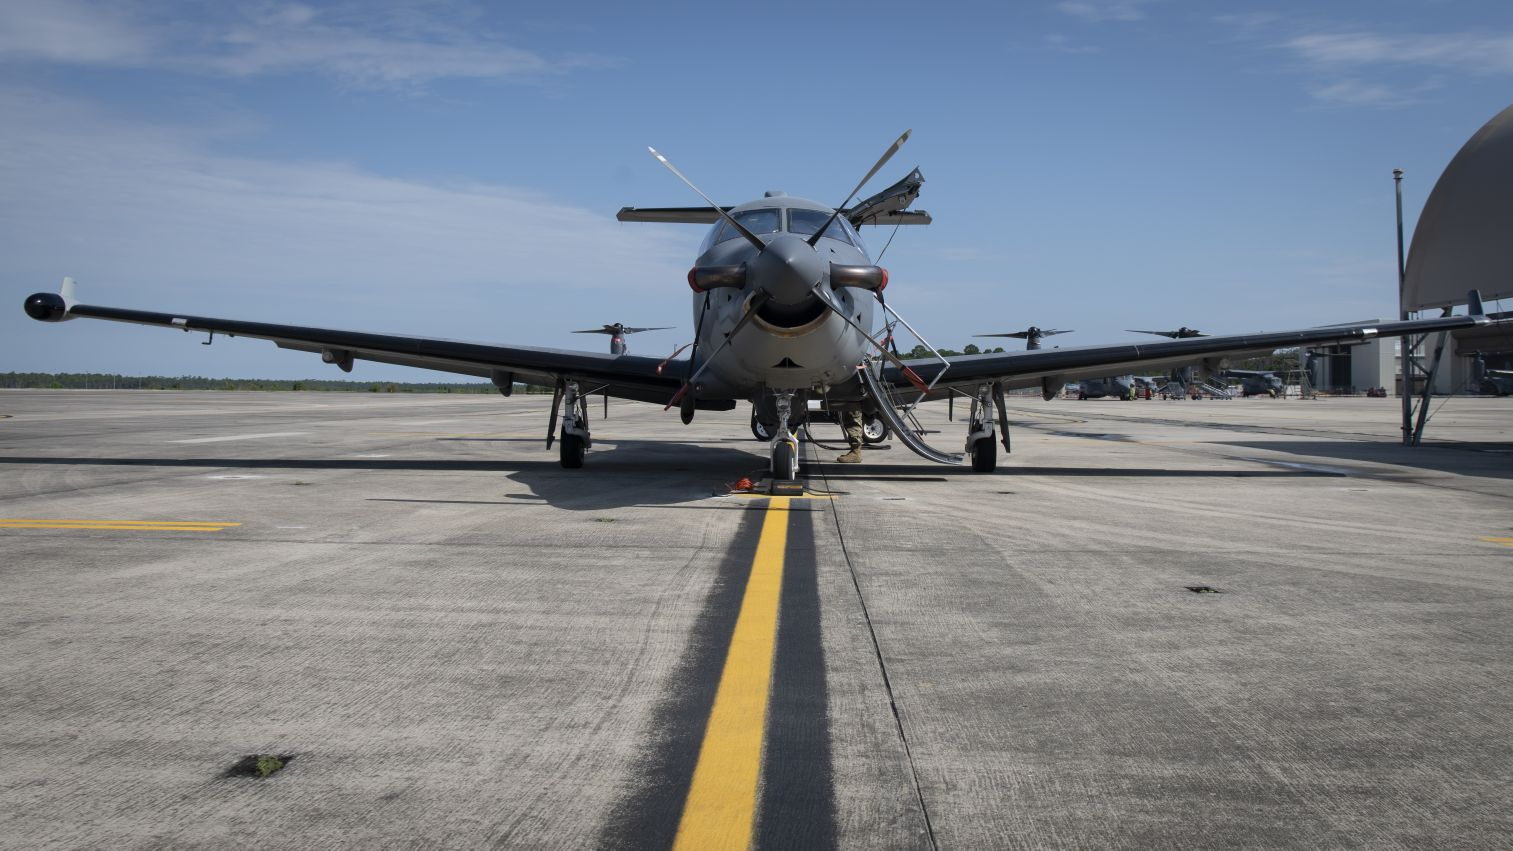 A U-28A assigned to the 319th Special Operations Squadron parked on the flight line at Hurlburt Field, Florida, on 12 August 2020. The aircraft, a modified Pilatus PC-12 turboprop utility aircraft, has reached 600,000 flight hours in USAF service. (US Air Force)